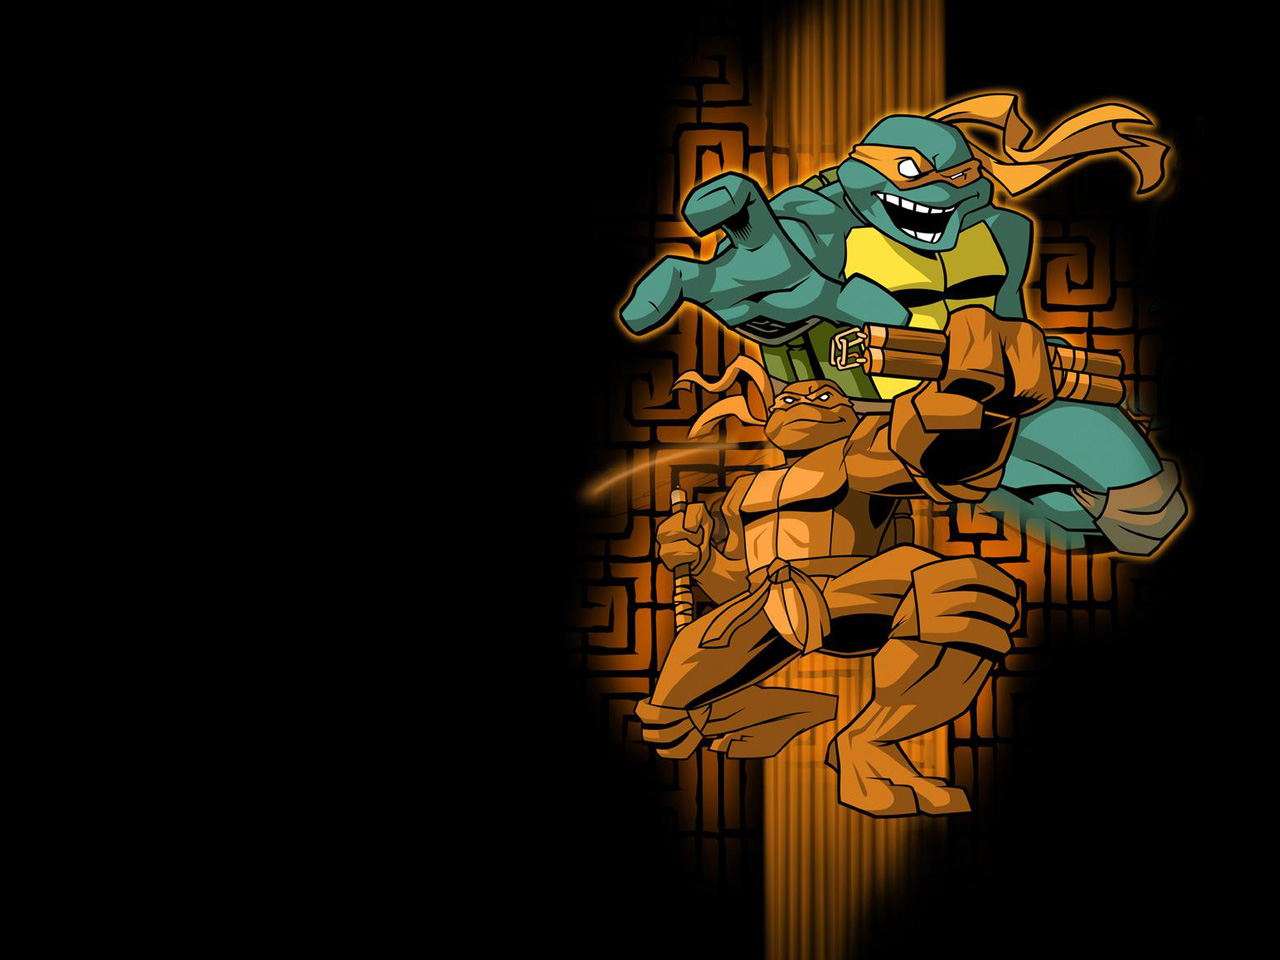 TMNT wallpaper 2003-2009 series (25)